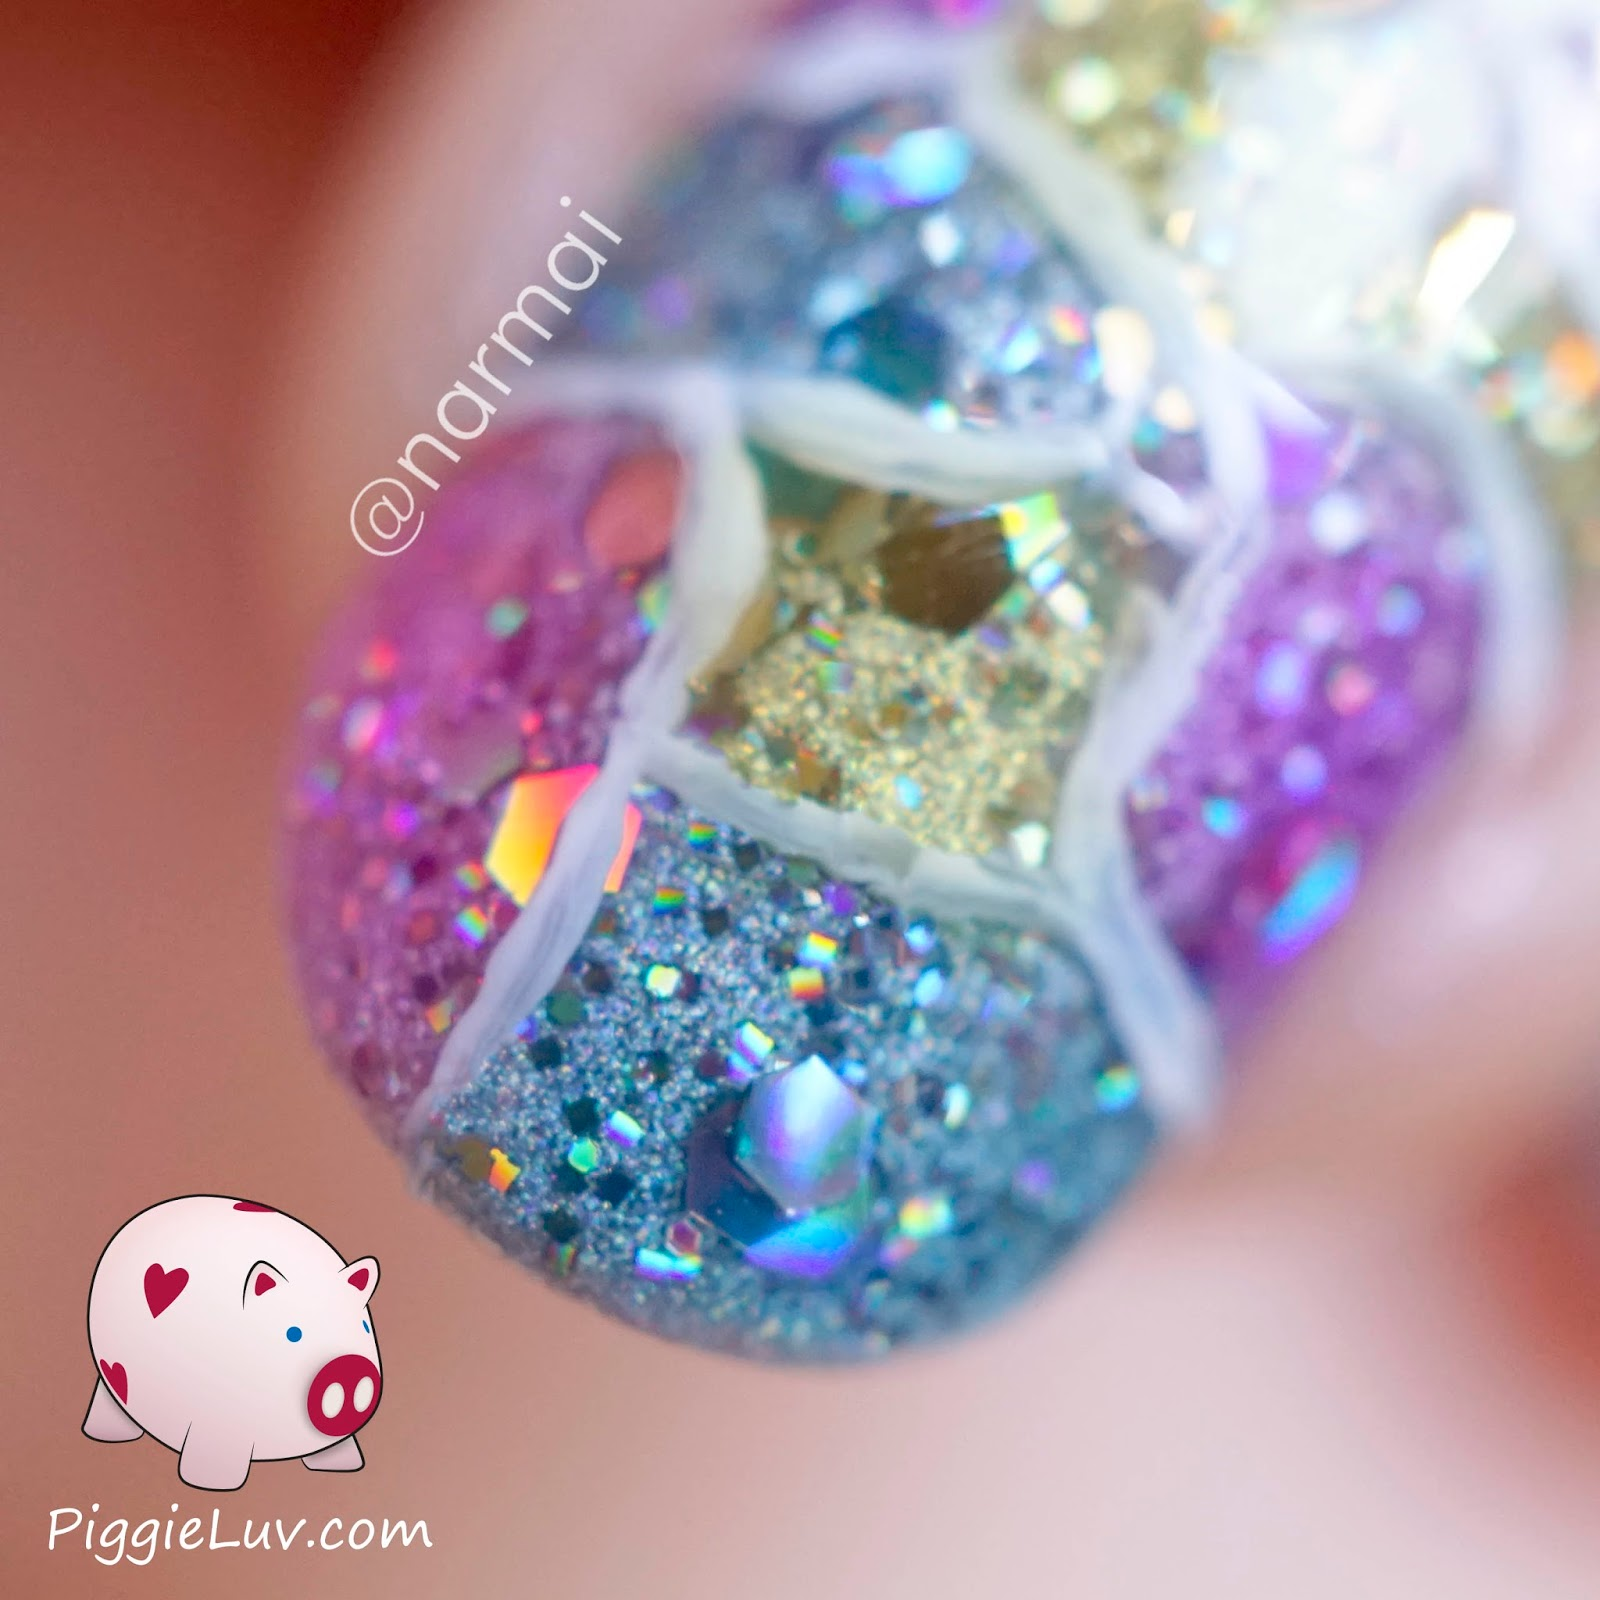 Piggieluv Cracked Glitter Nail Art